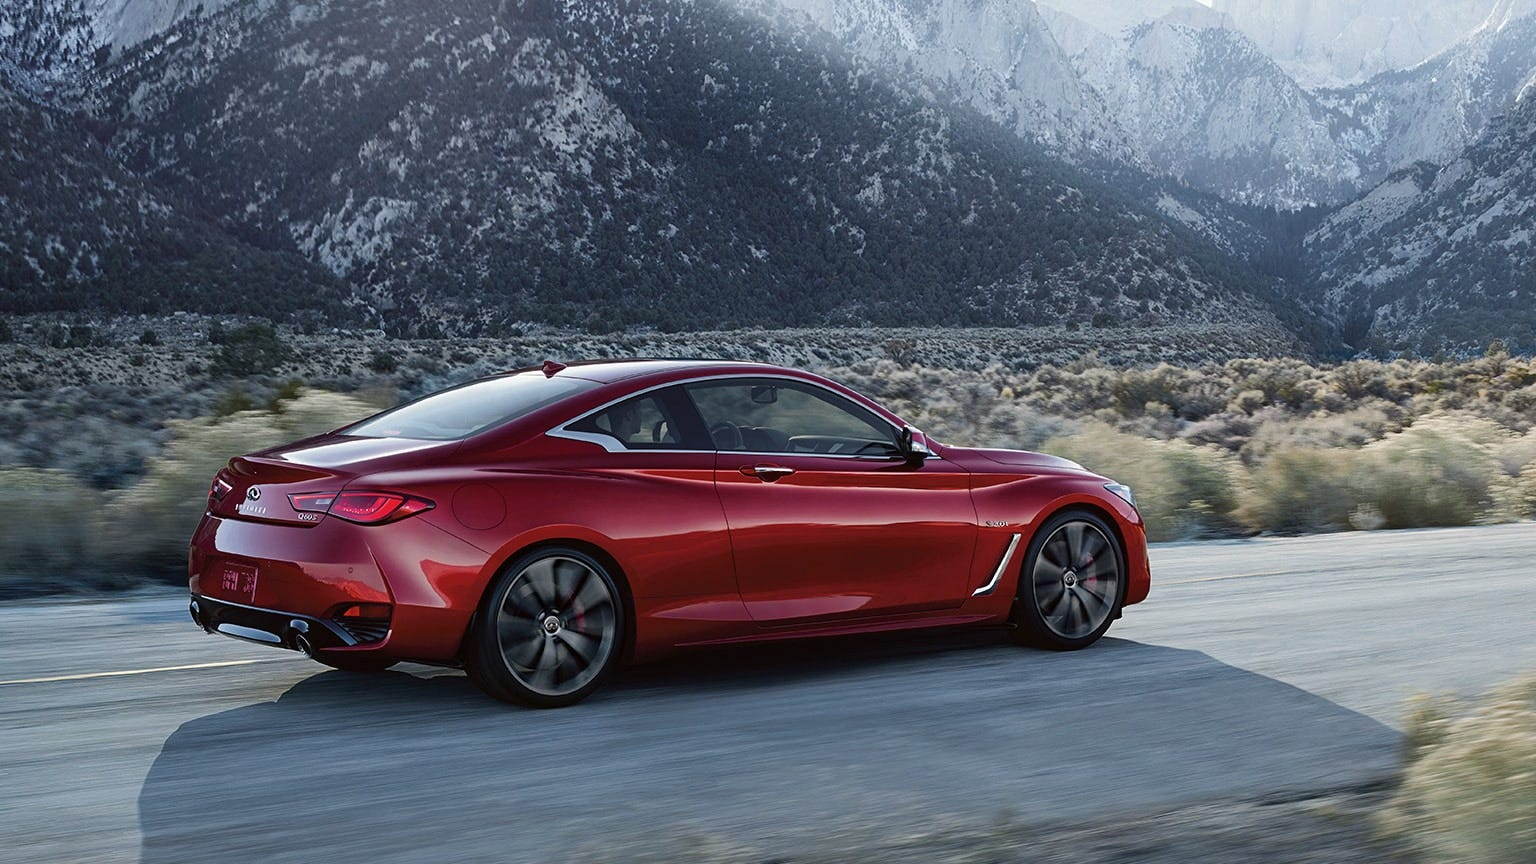 2020 Infiniti Q60 New Model and Performance